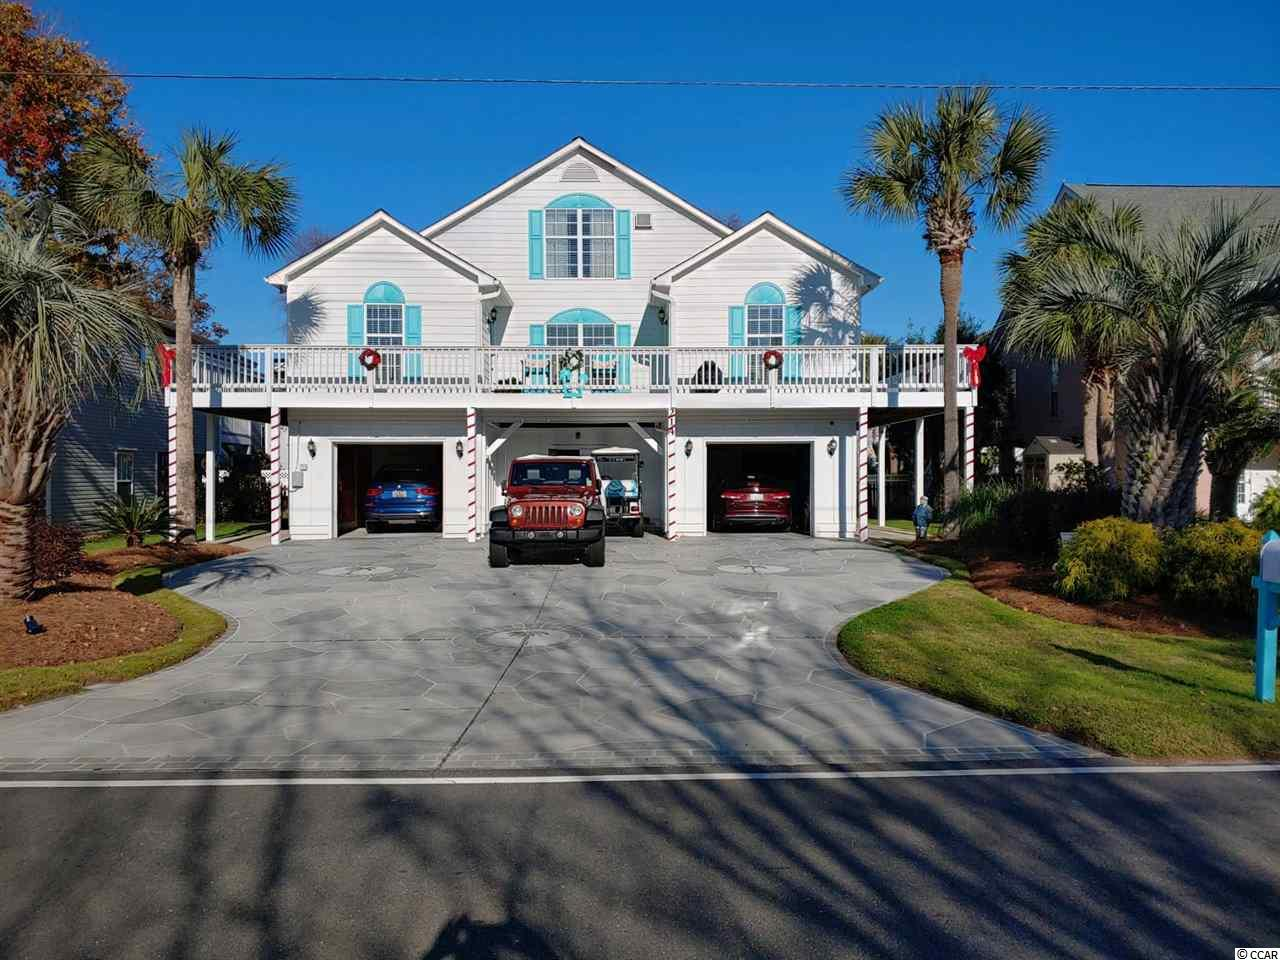 214 Melody Lane, known as Dream Vacation, is located oceanview, 11 homes from the sand in the Town of Surfside Beach. The home is seven bedrooms, seven and a half bathrooms, measures 5500 heated square feet and comes with a private heated pool. The interior is meticulously decorated and maintained, and the owner has made improvements that will make this raised beach house feel like a home. On the main level, there is a large oceanfront living room, dining area, that leads to two well-appointed kitchens highlighting granite countertops, shaker style white 42-inch cabinets, and stainless-steel appliances. Upstairs you'll find four more bedrooms, and four bathrooms. The exterior is wrapped in concrete fiber siding, parking for 6 cars, storage shed, and fenced in yard with pavers surrounding a custom heated pool. With access from the house, the twenty-five-foot covered back porch leads to the backyard.  You're just steps away from the Surfside Pier, the small downtown restaurant district, and minutes to all Myrtle Beach has to offer. The home has never been rented but would be fantastic rental property if investing is what you have in mind.   Why continue to rent when you can own your very own private beach retreat.